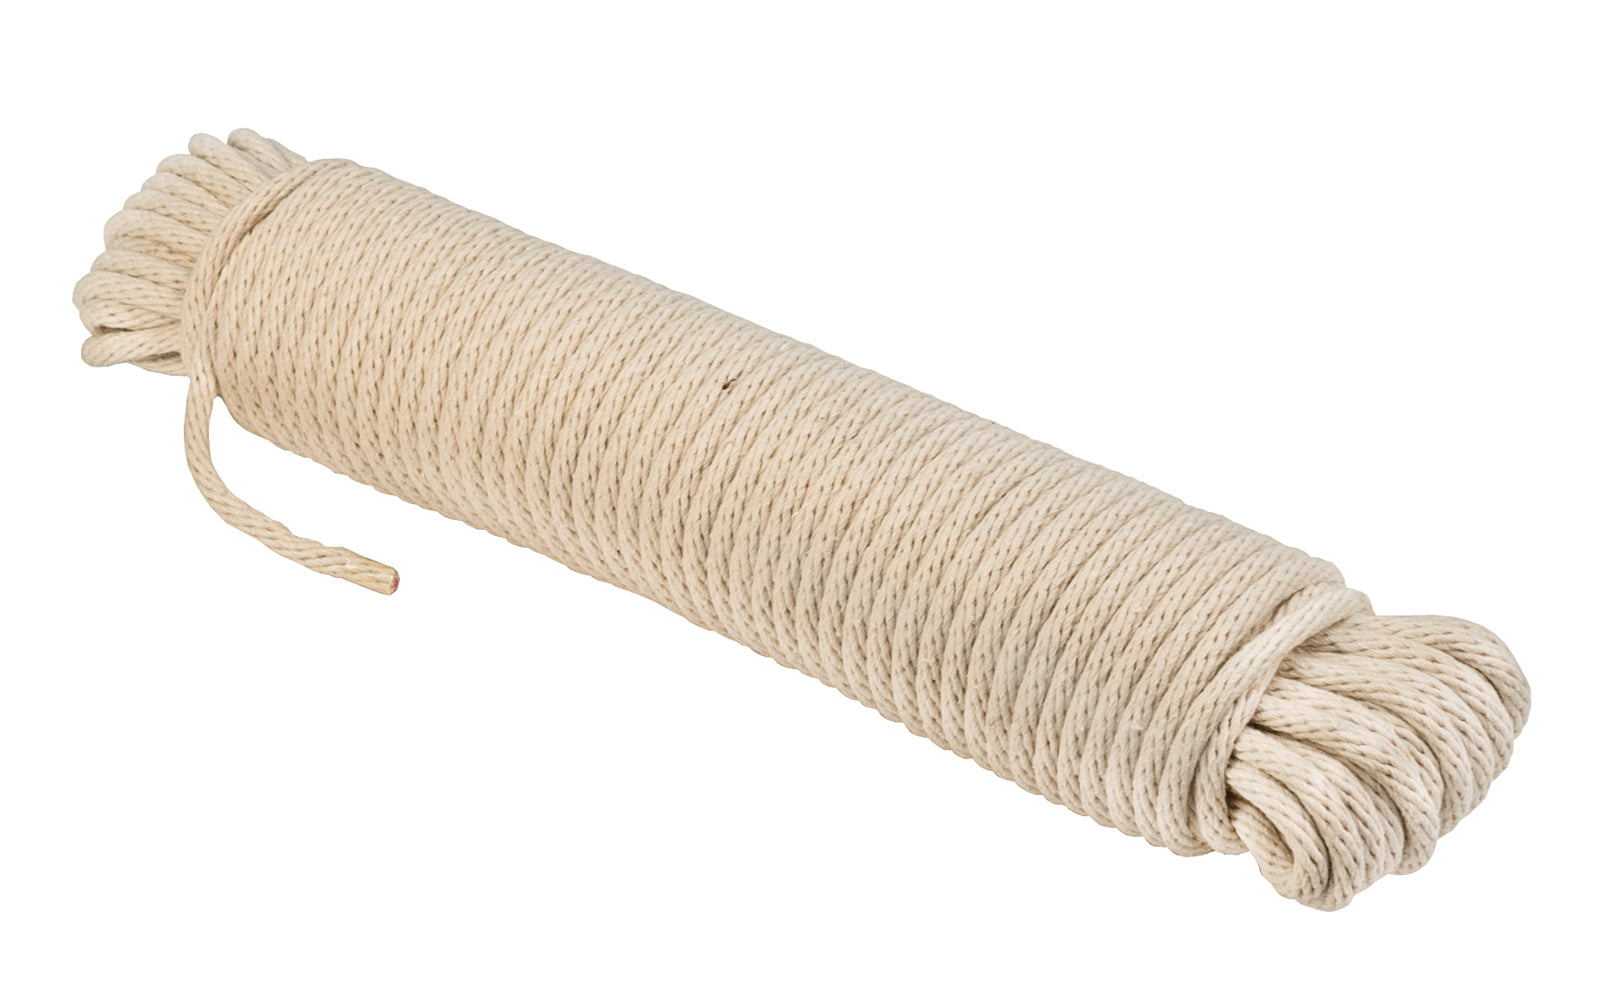 Natural Cotton Braided Sash Cord ~ #8 Size - 1/4